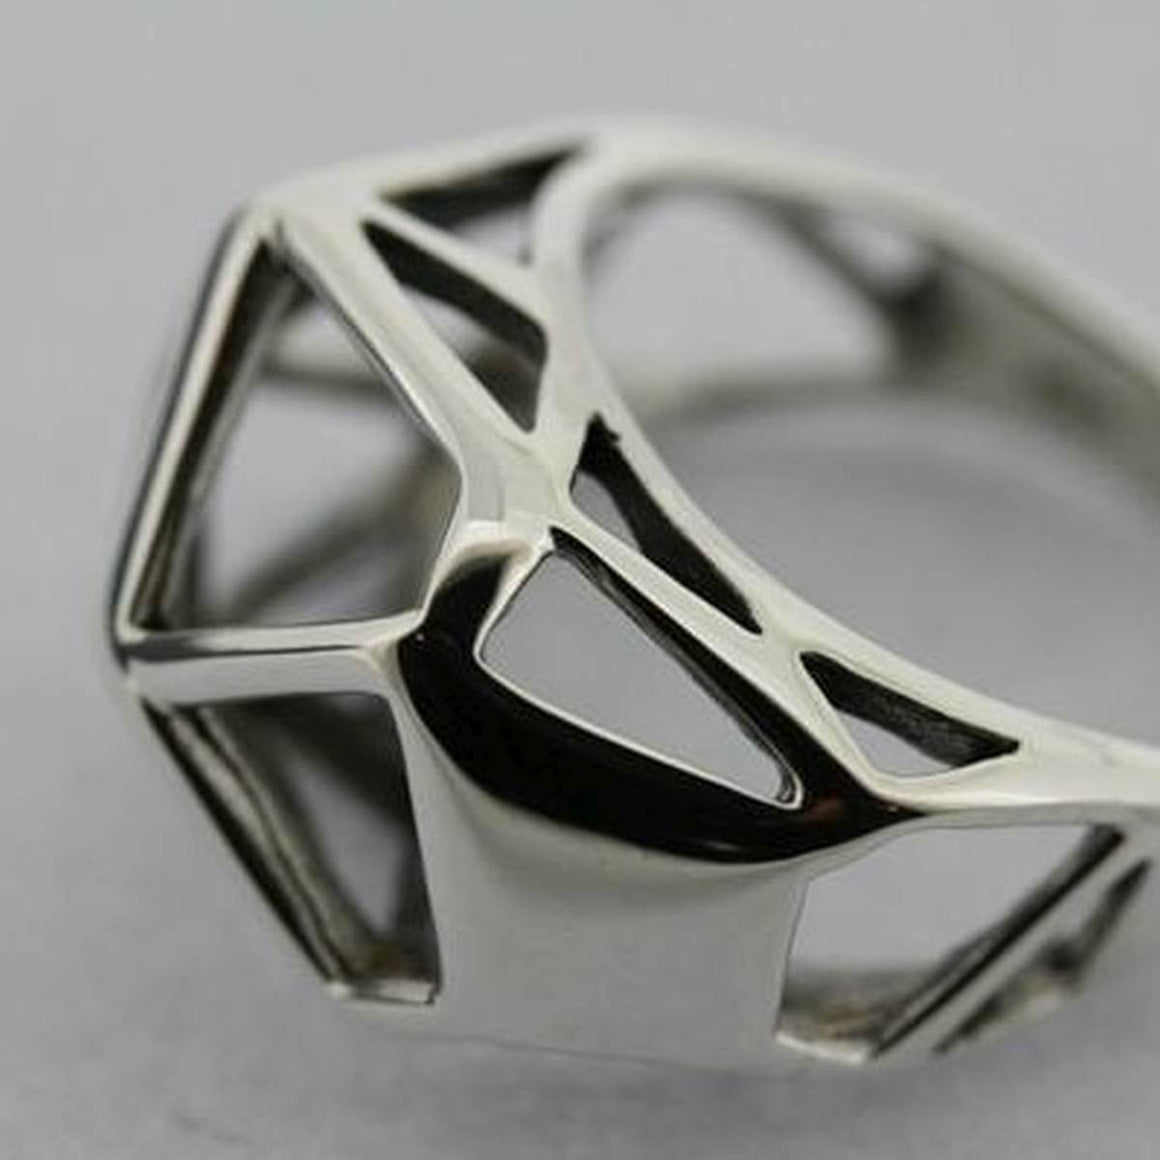 A Silver Ring, featuring a larger, geometric form made of cut out triangles.